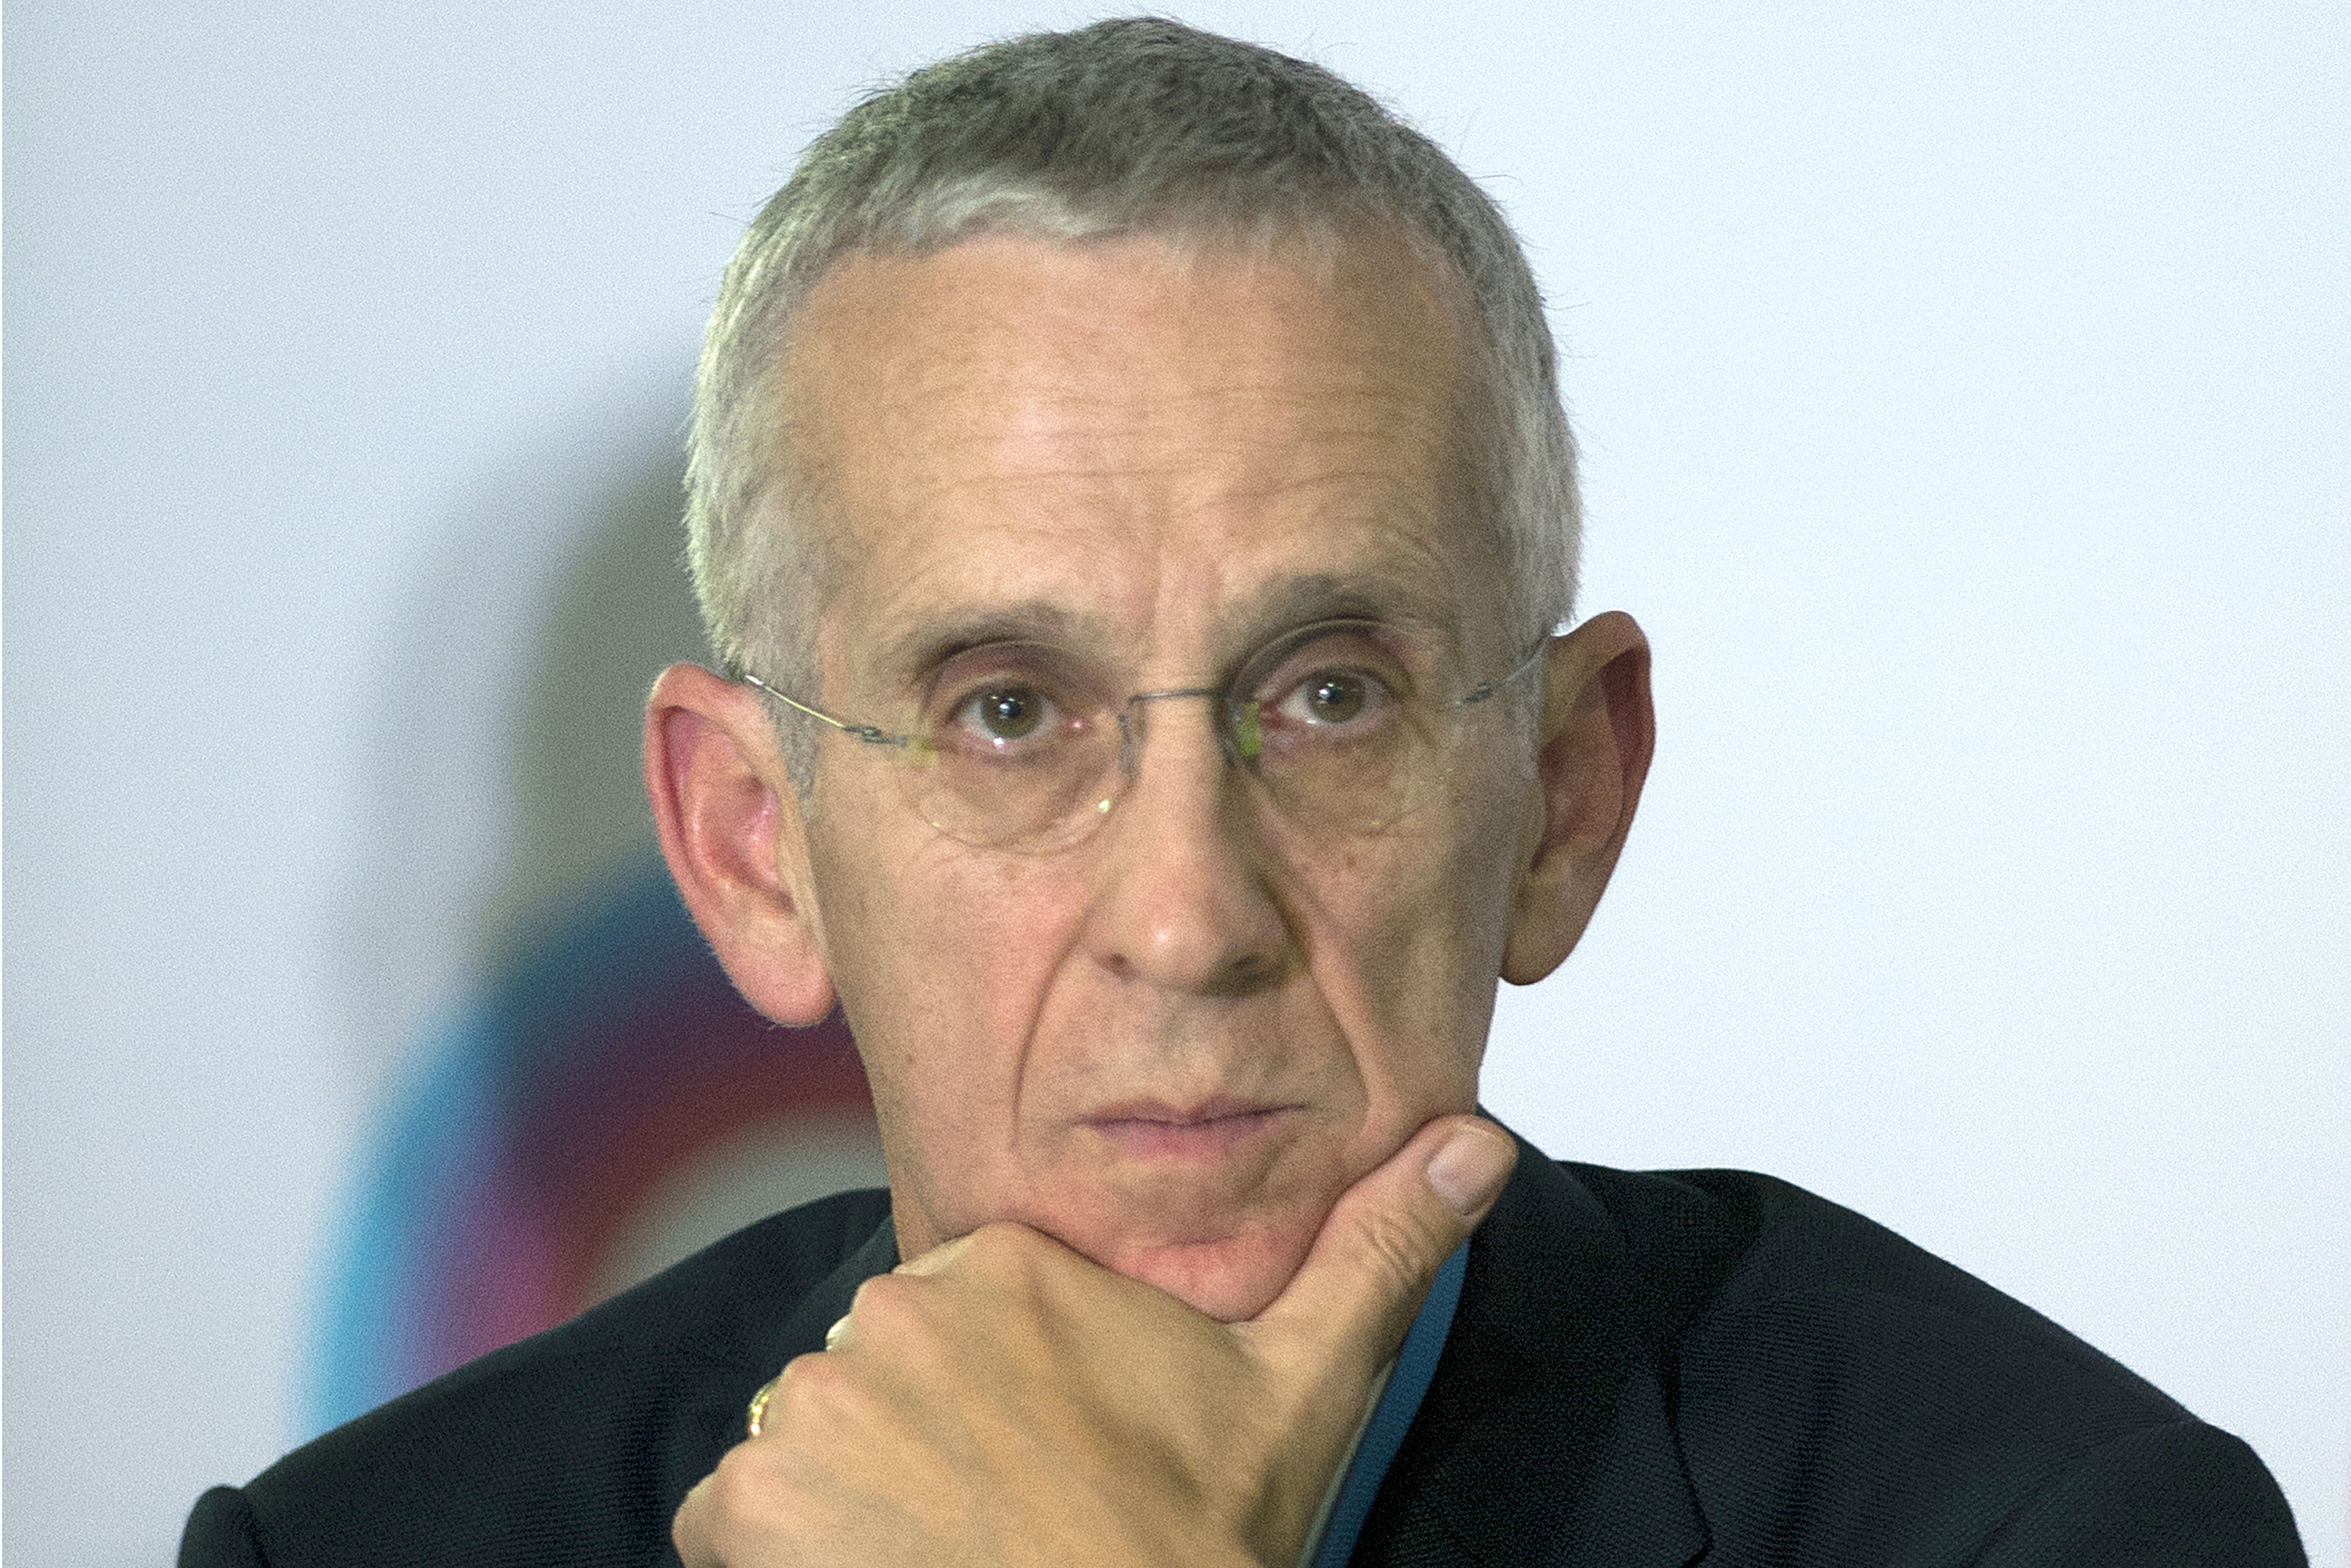 Todd Stern, the former U.S. special envoy for climate change, is seen at a press conference during major intergovernmental climate meetings in Lima, Peru, on Dec. 8, 2014.